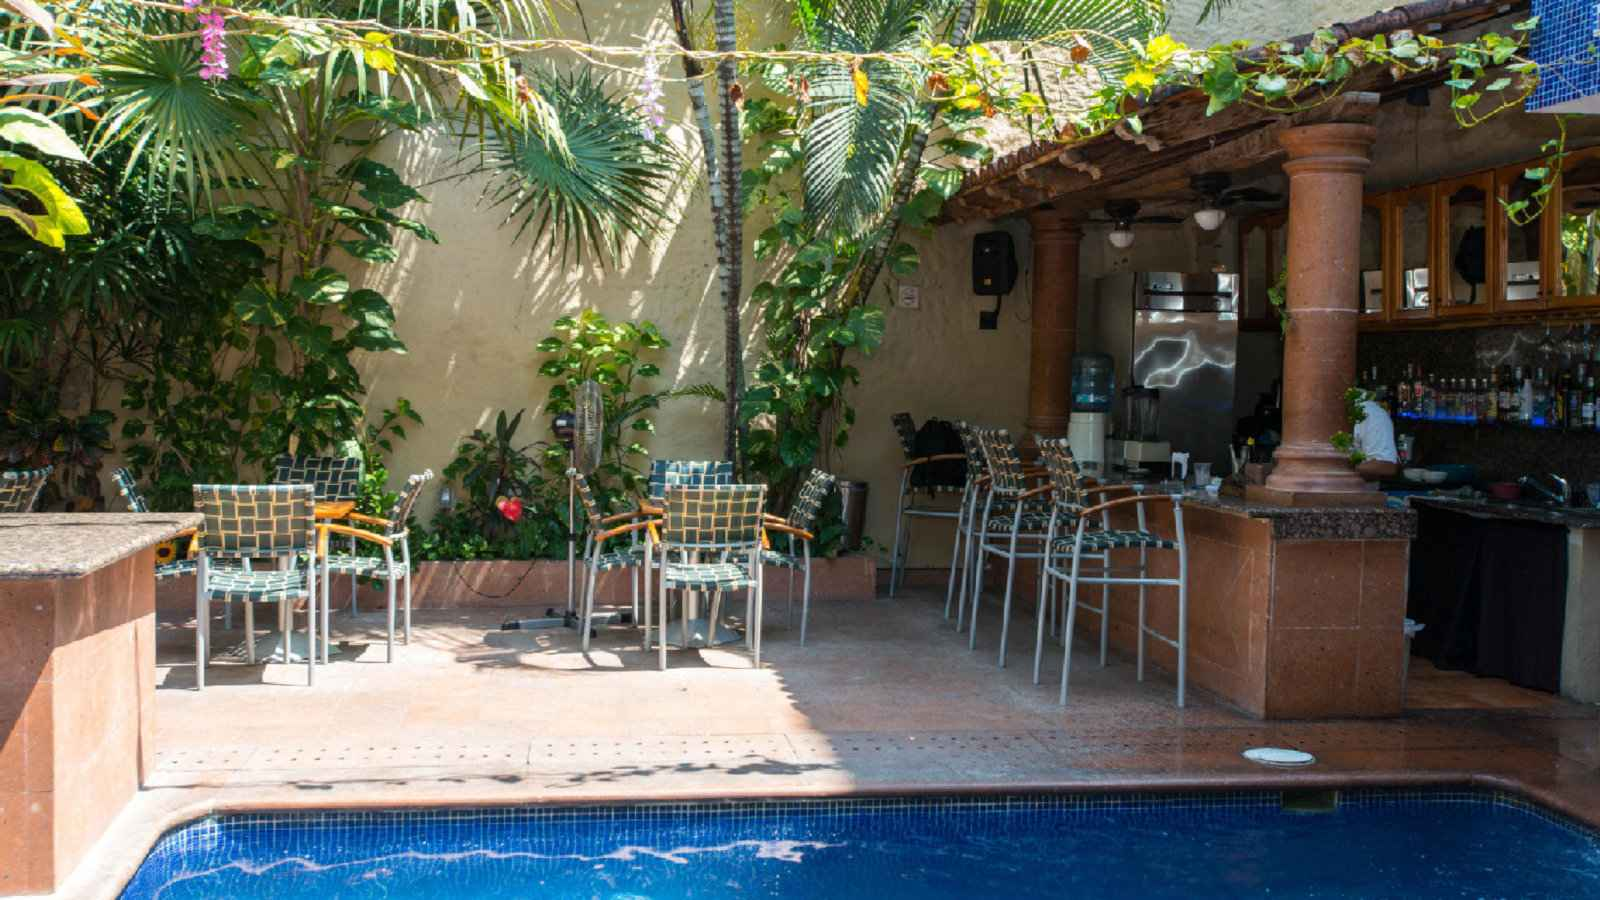 The cute pool at Mercurio Hotel hosts fun gay pool parties in Puerto Vallarta.